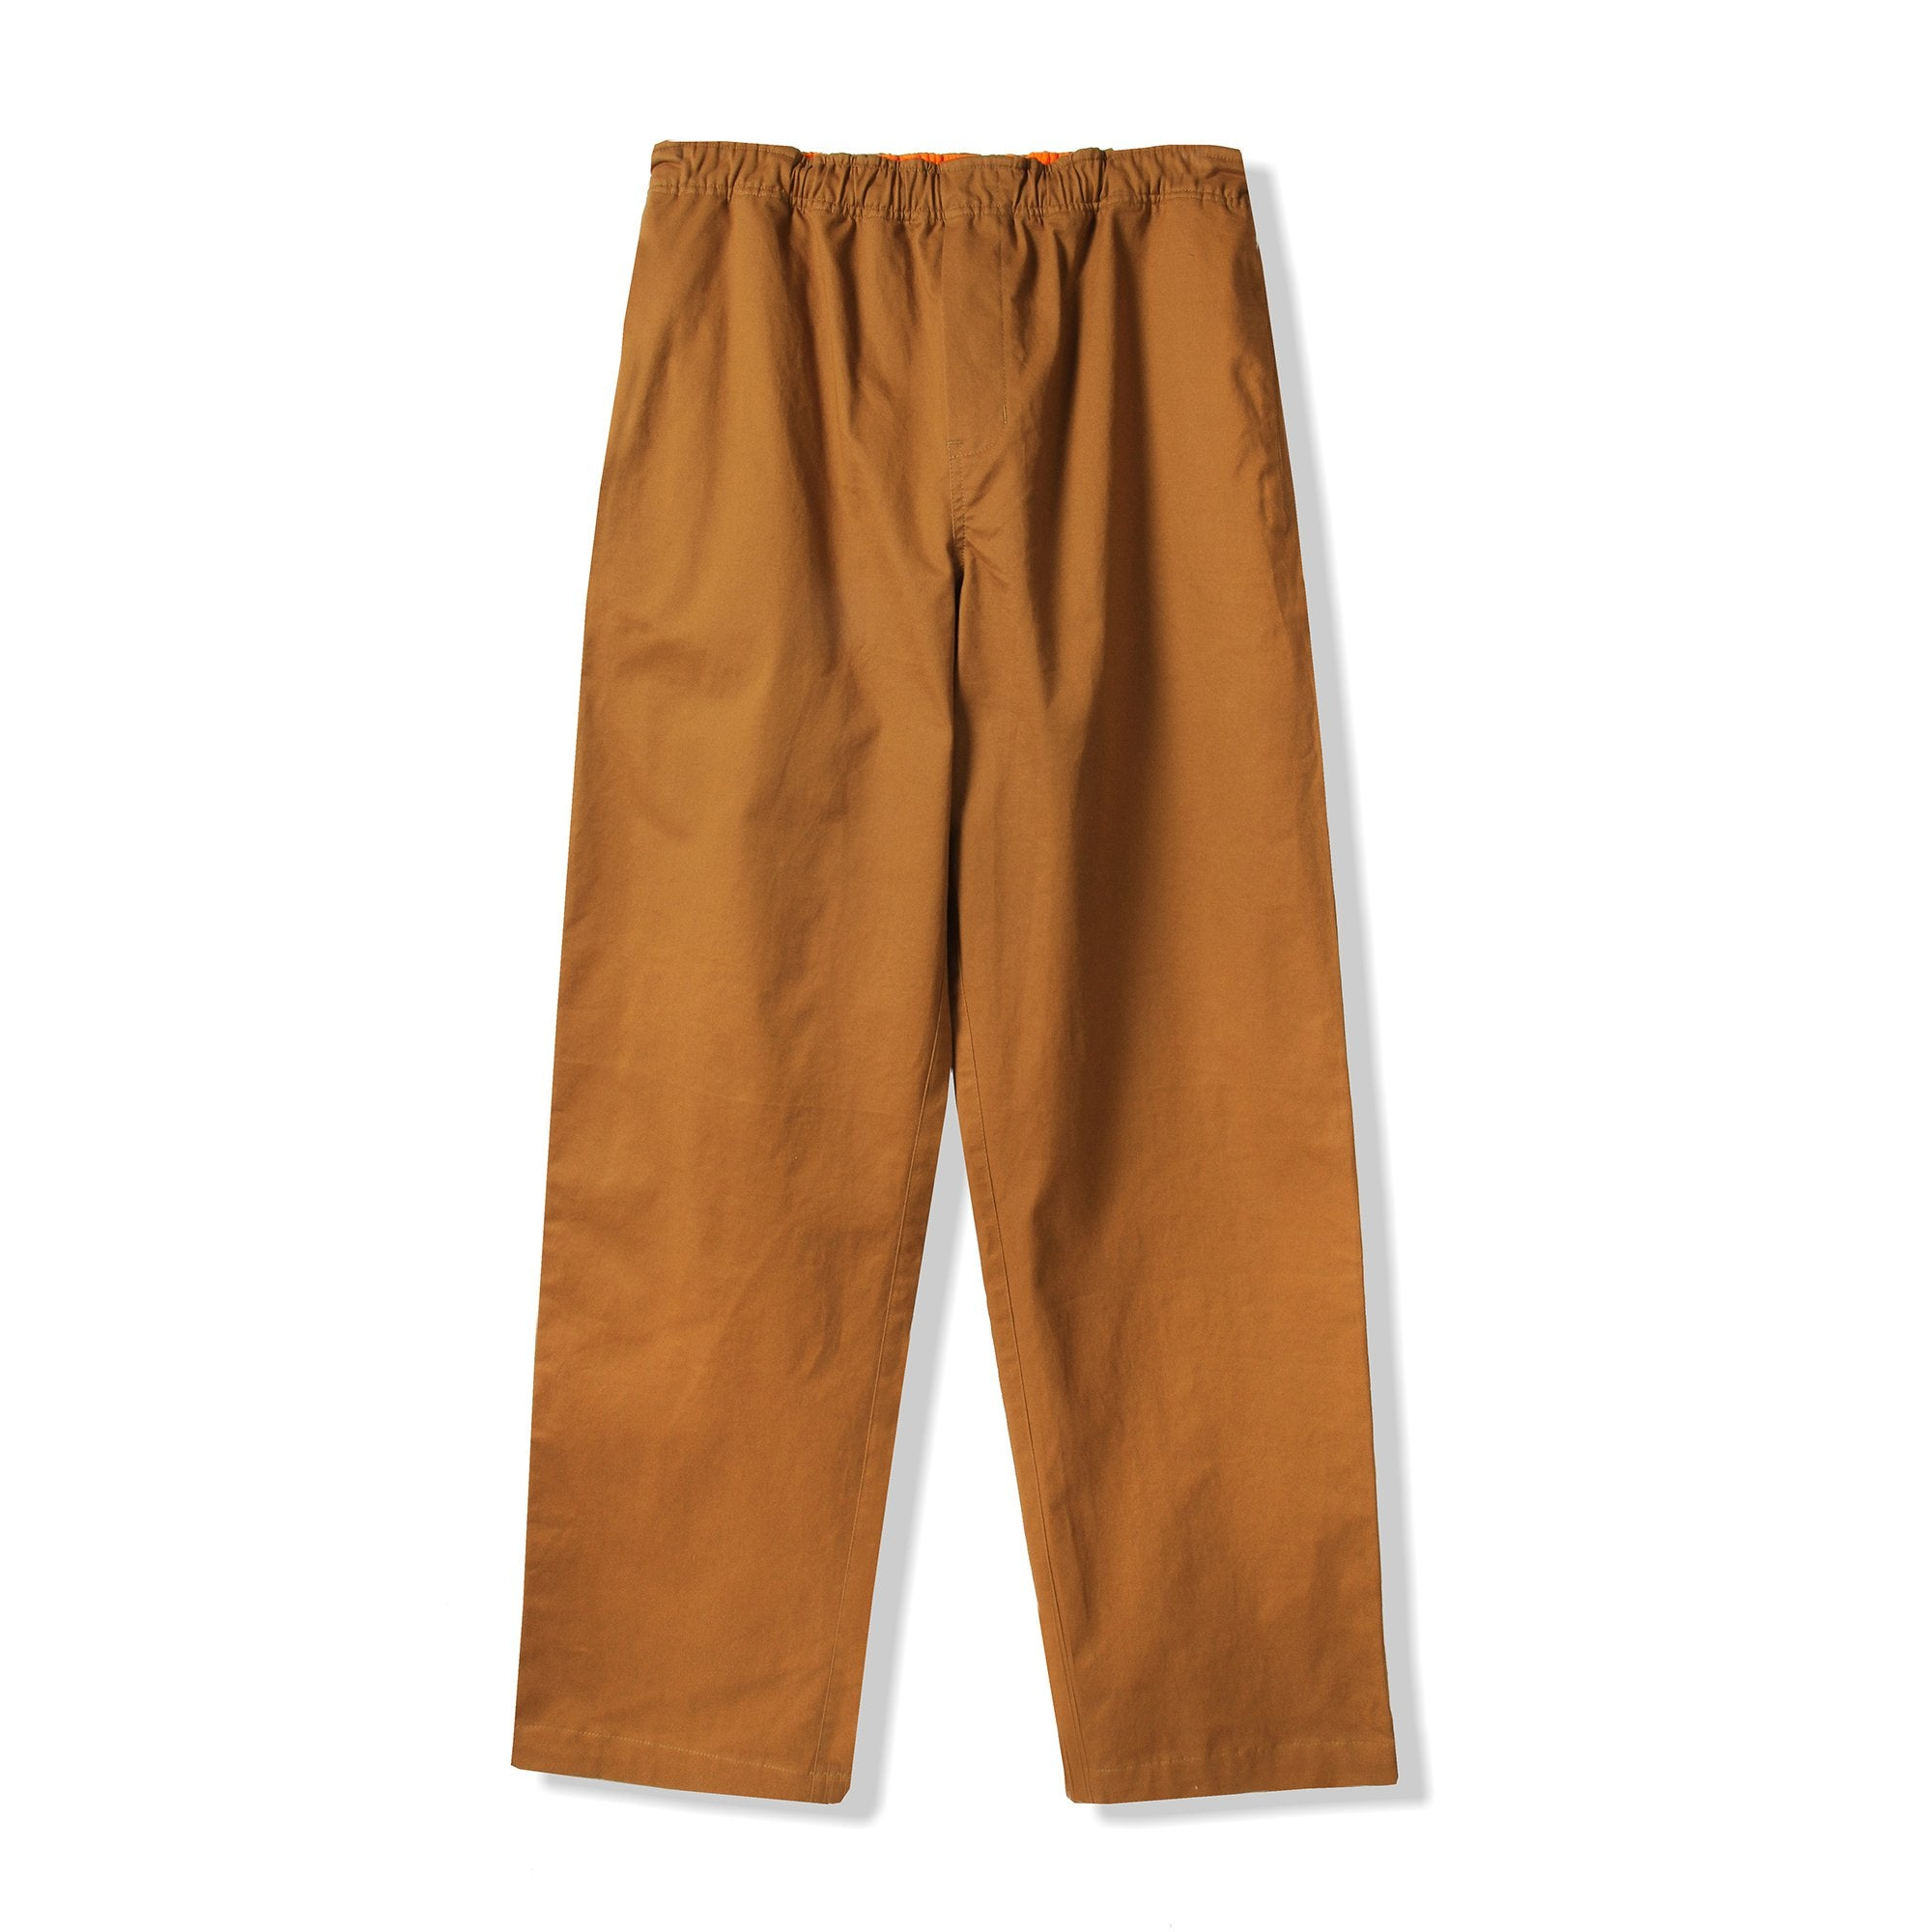 Butter Goods Casual Pants Product Photo #1